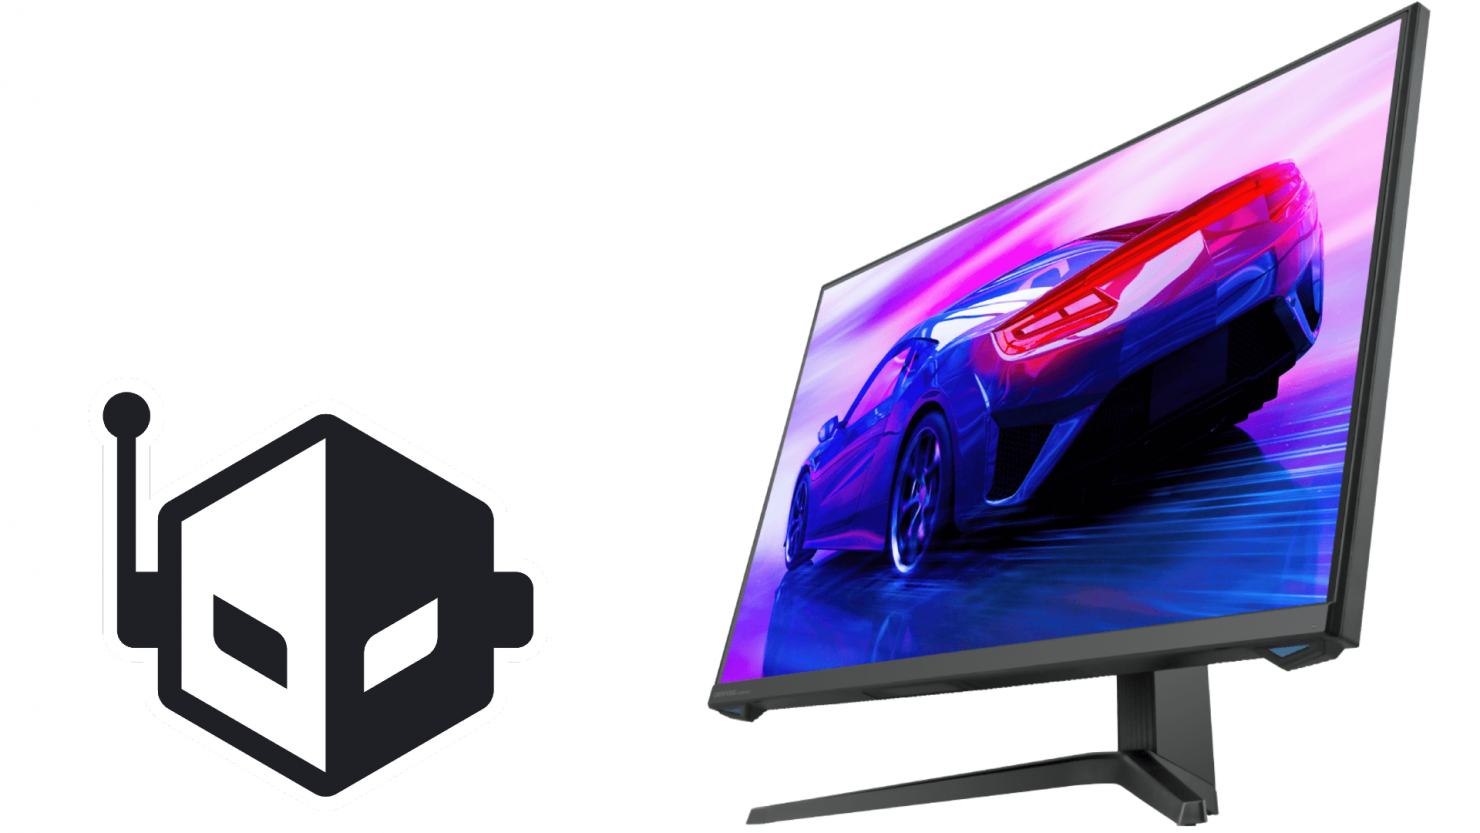 green-house-gaming-announced-the-27-inch-igzo-gaming-monitor!